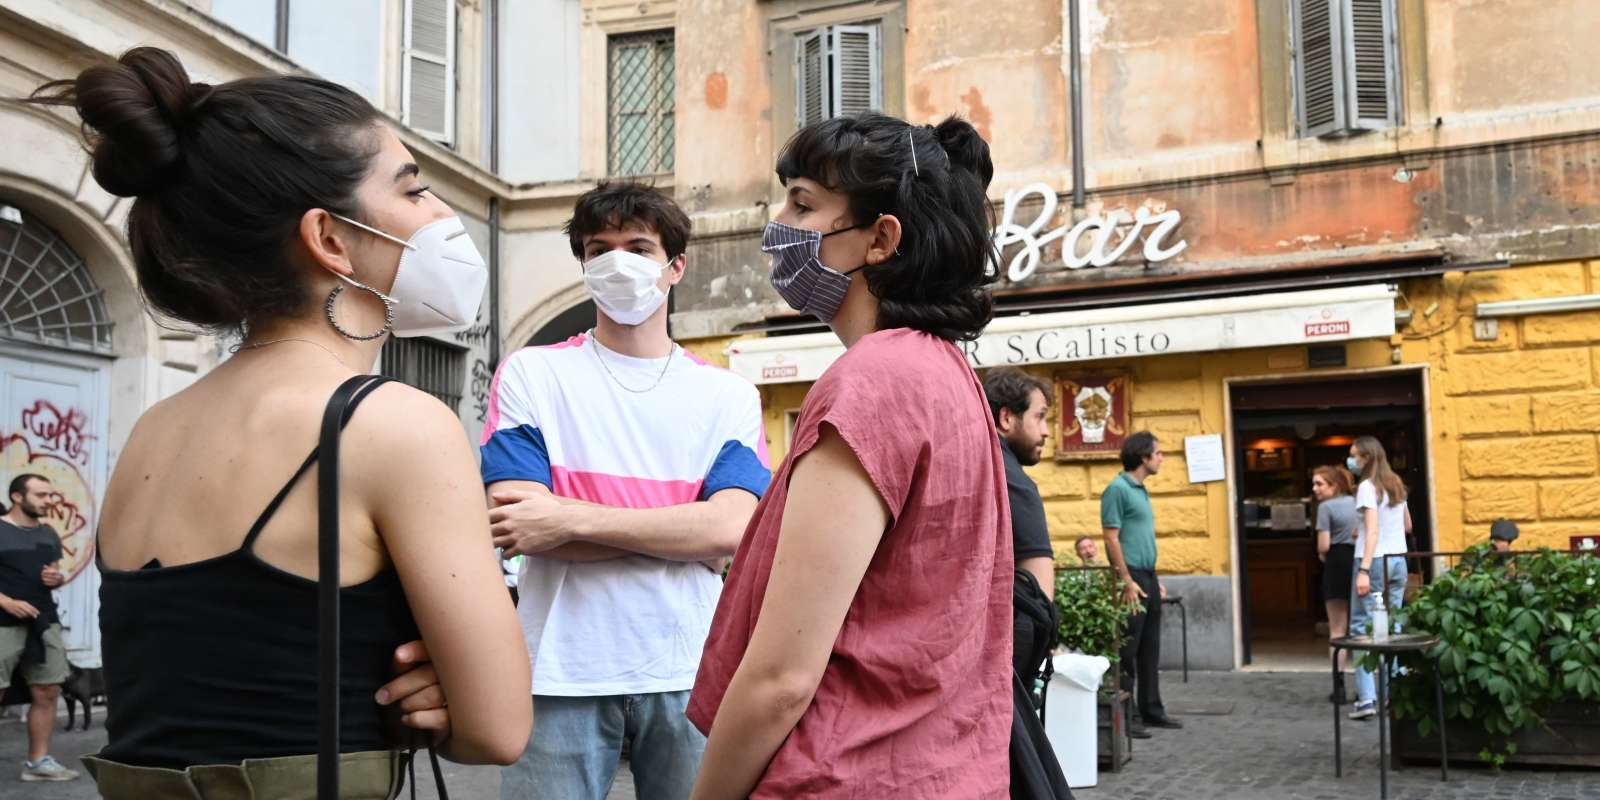 Youth gather for an aperitif drink outside a bar in the Trastevere district of Rome, on May 18, 2020 as the country's lockdown is easing after over two months, aimed at curbing the spread of the COVID-19 infection, caused by the novel coronavirus. Restaurants and churches reopen in Italy on May 18, 2020 as part of a fresh wave of lockdown easing in Europe and the country's latest step in a cautious, gradual return to normality, allowing businesses and churches to reopen after a two-month lockdown. / AFP / Alberto PIZZOLI